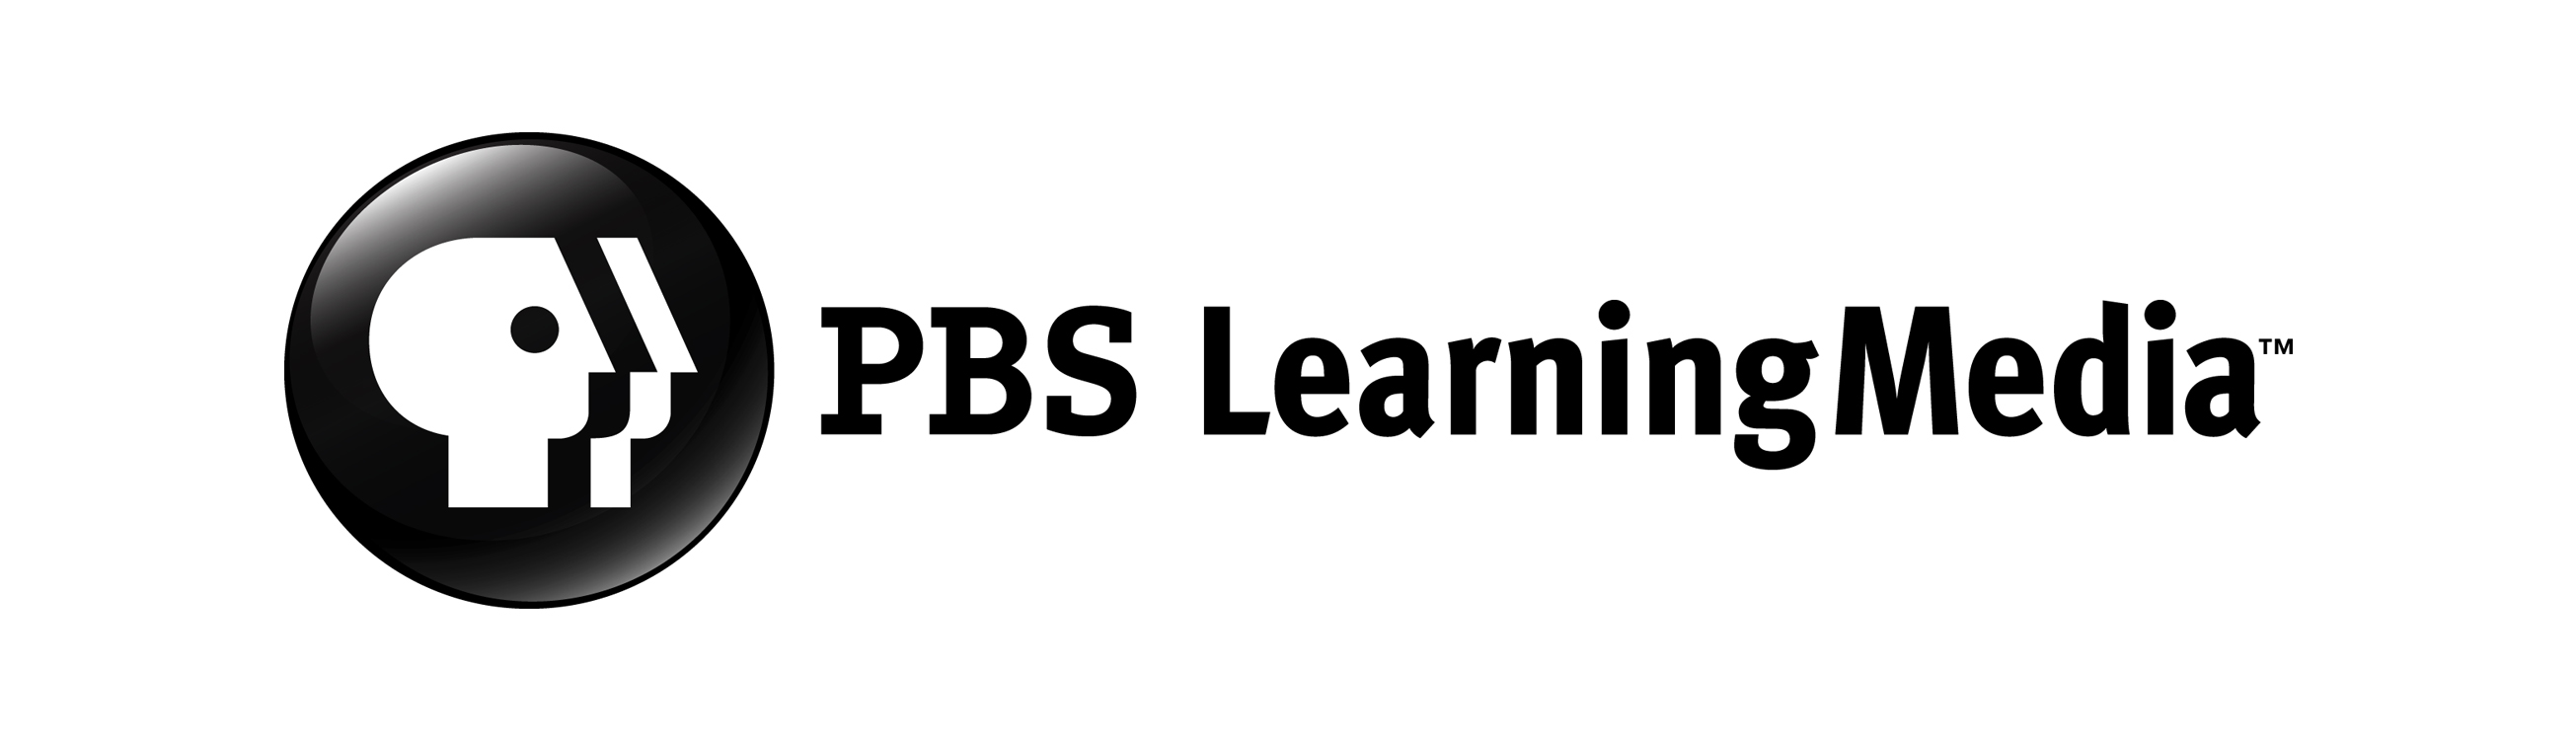 PBS LearningMedia Logo.jpg